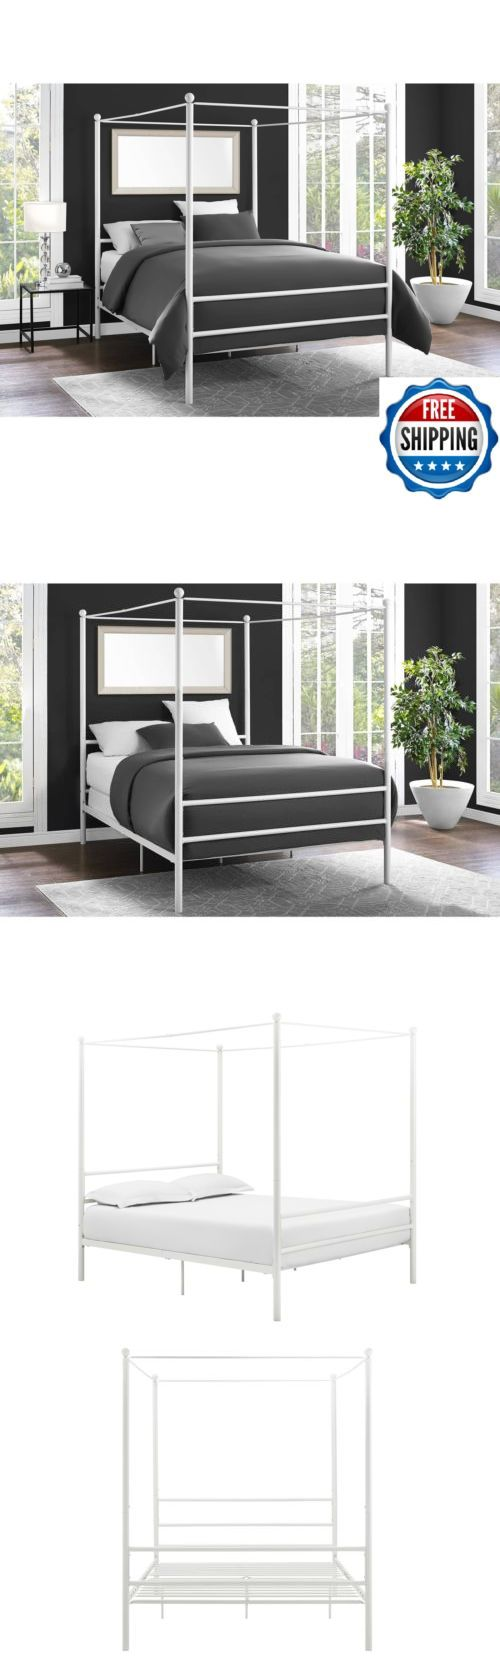 Napa queen size black canopy bed free shipping today overstock com - Beds And Bed Frames 175758 Metal Canopy Bed Frame Platform Queen Size Headboard Modern Bedroom